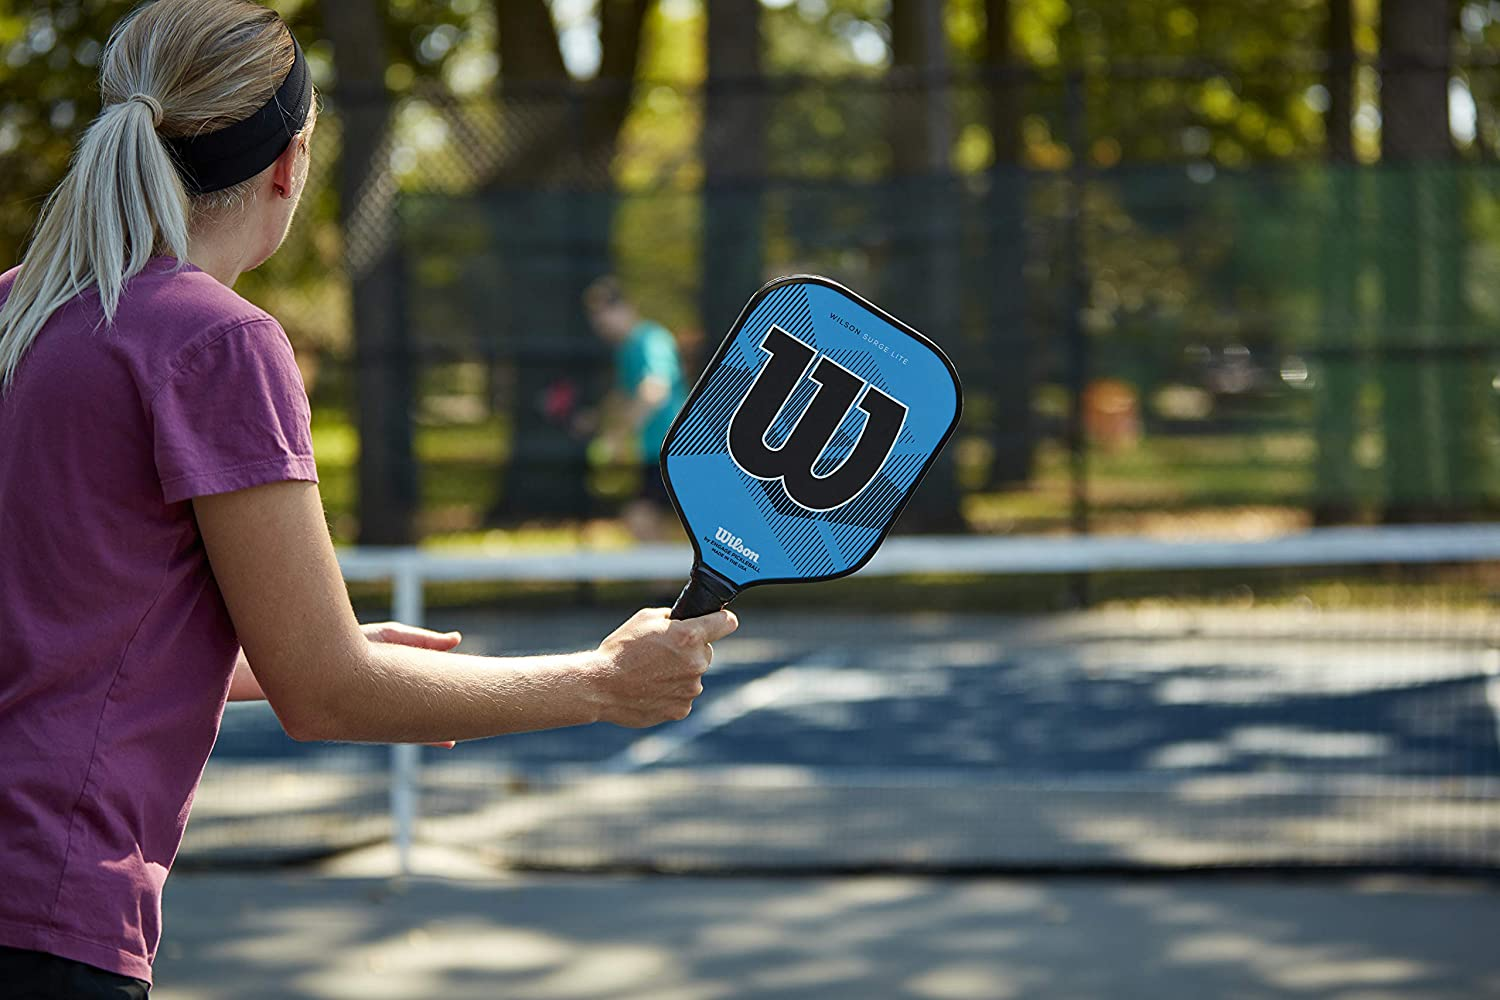 Amazon.com: Wilson Sporting Goods Surge Lite Pickleball ...